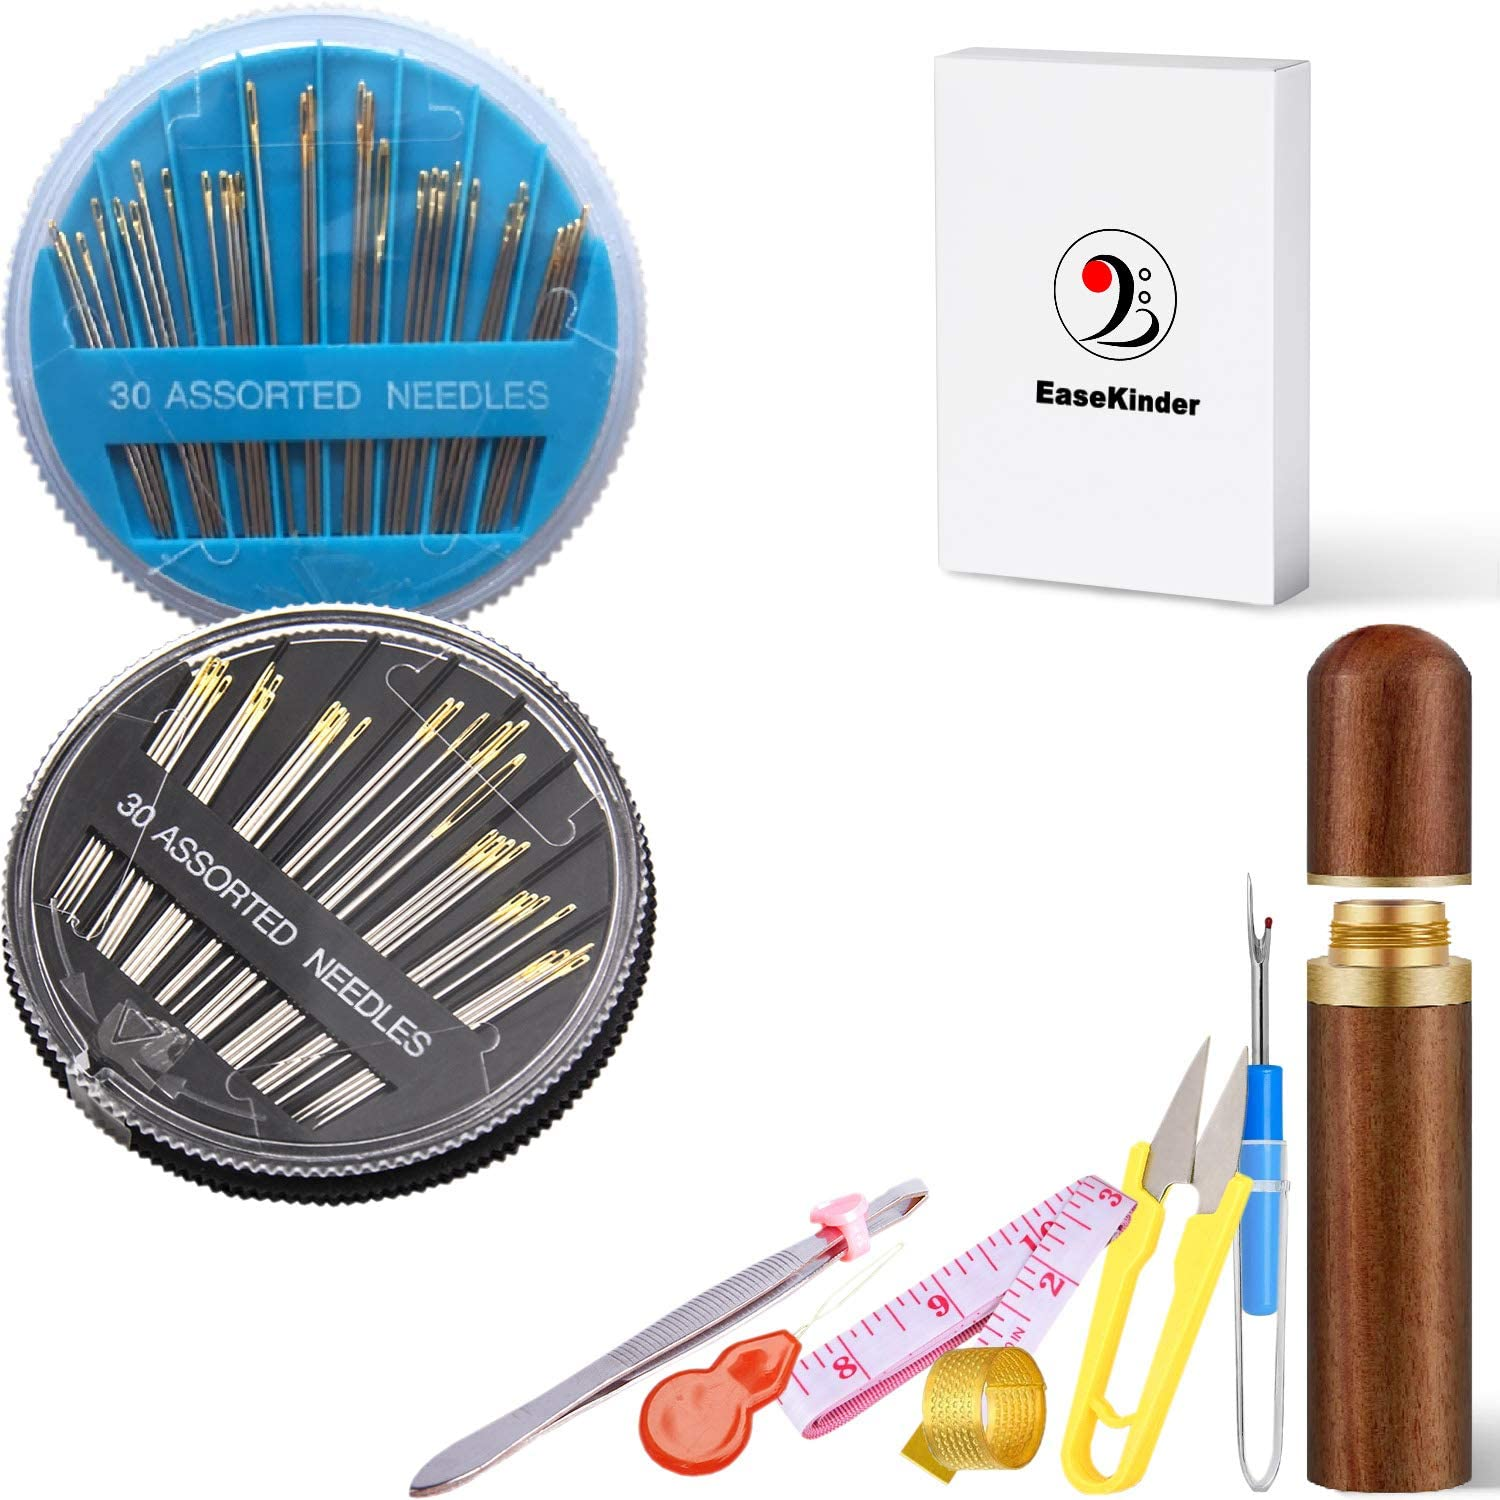 Sewing Needles in Gift Box Premium Hand Sewing Needles Stitching Sharp Needles with Rosewood Box for Sewing Mending Clothing Embroidery Crafts Golden Tail 60PCS Assorted